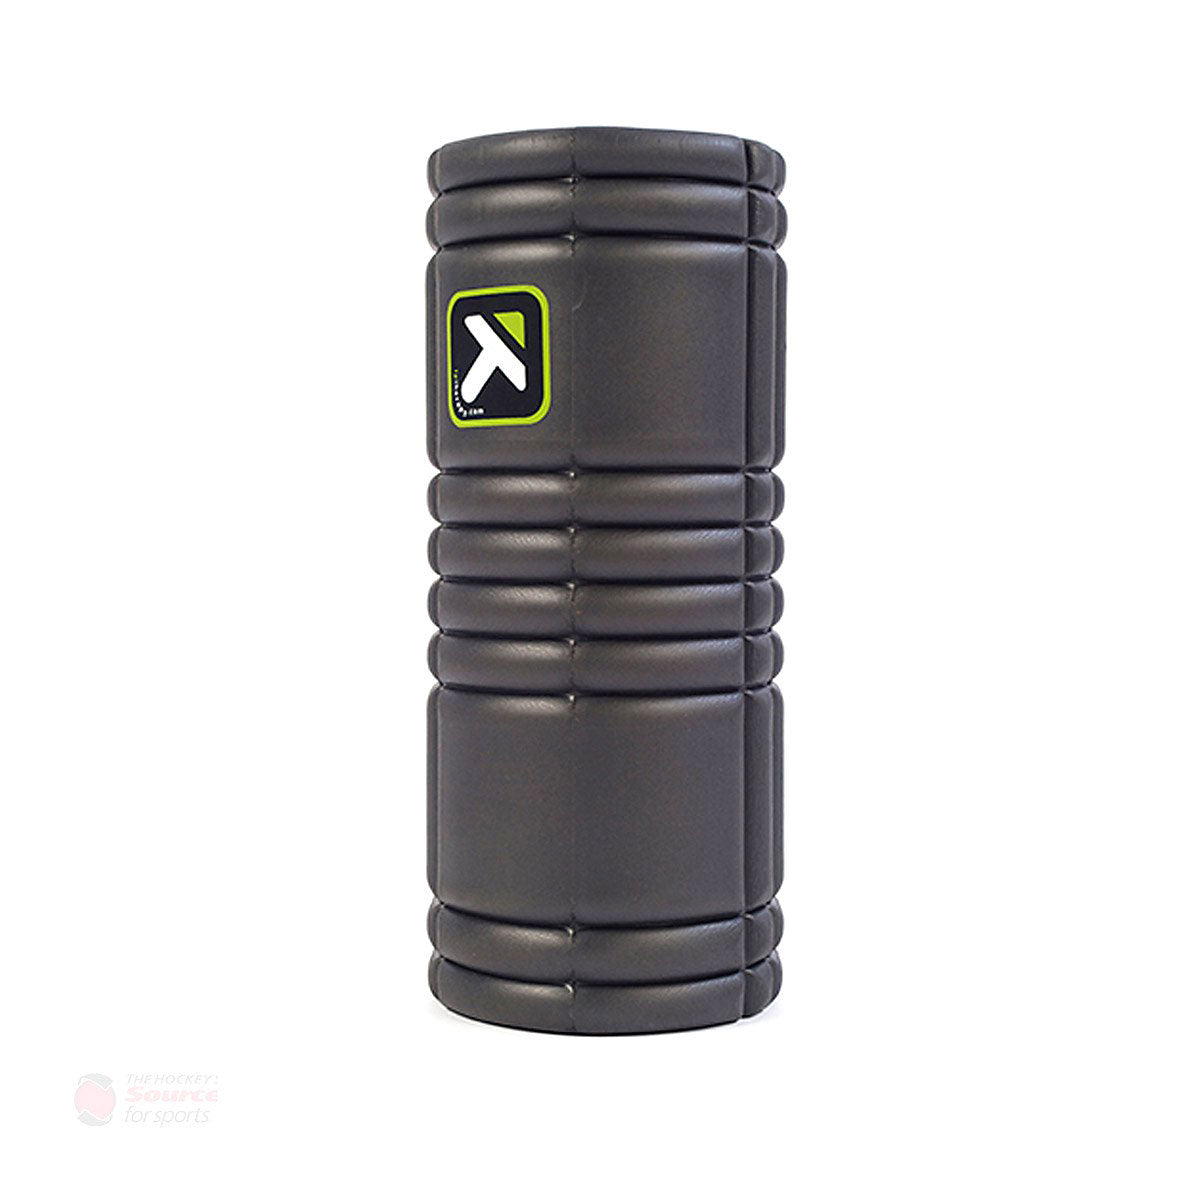 SKLZ Trigger Point Grid Foam Roller